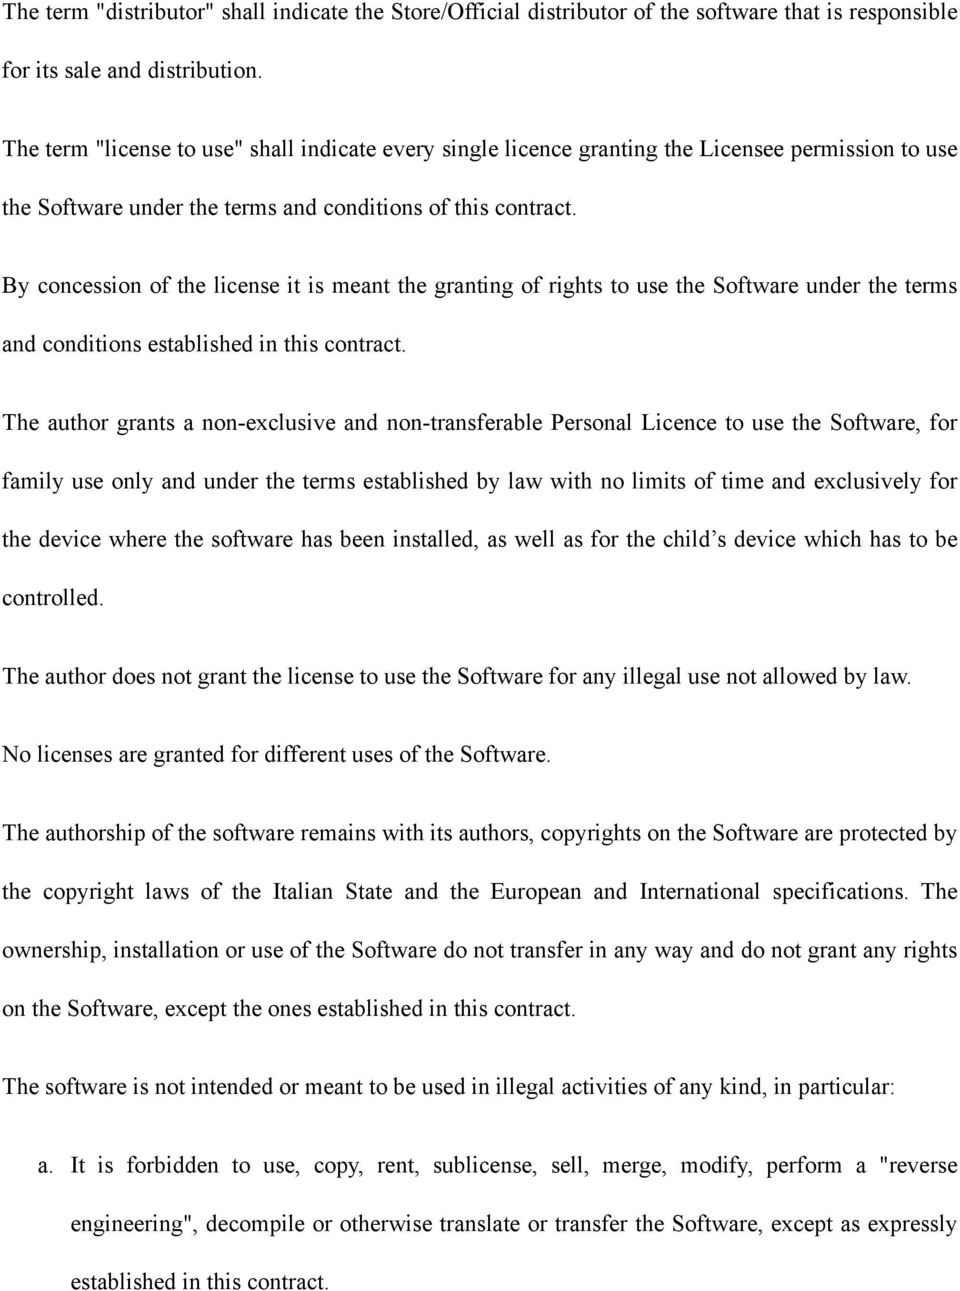 By concession of the license it is meant the granting of rights to use the Software under the terms and conditions established in this contract.